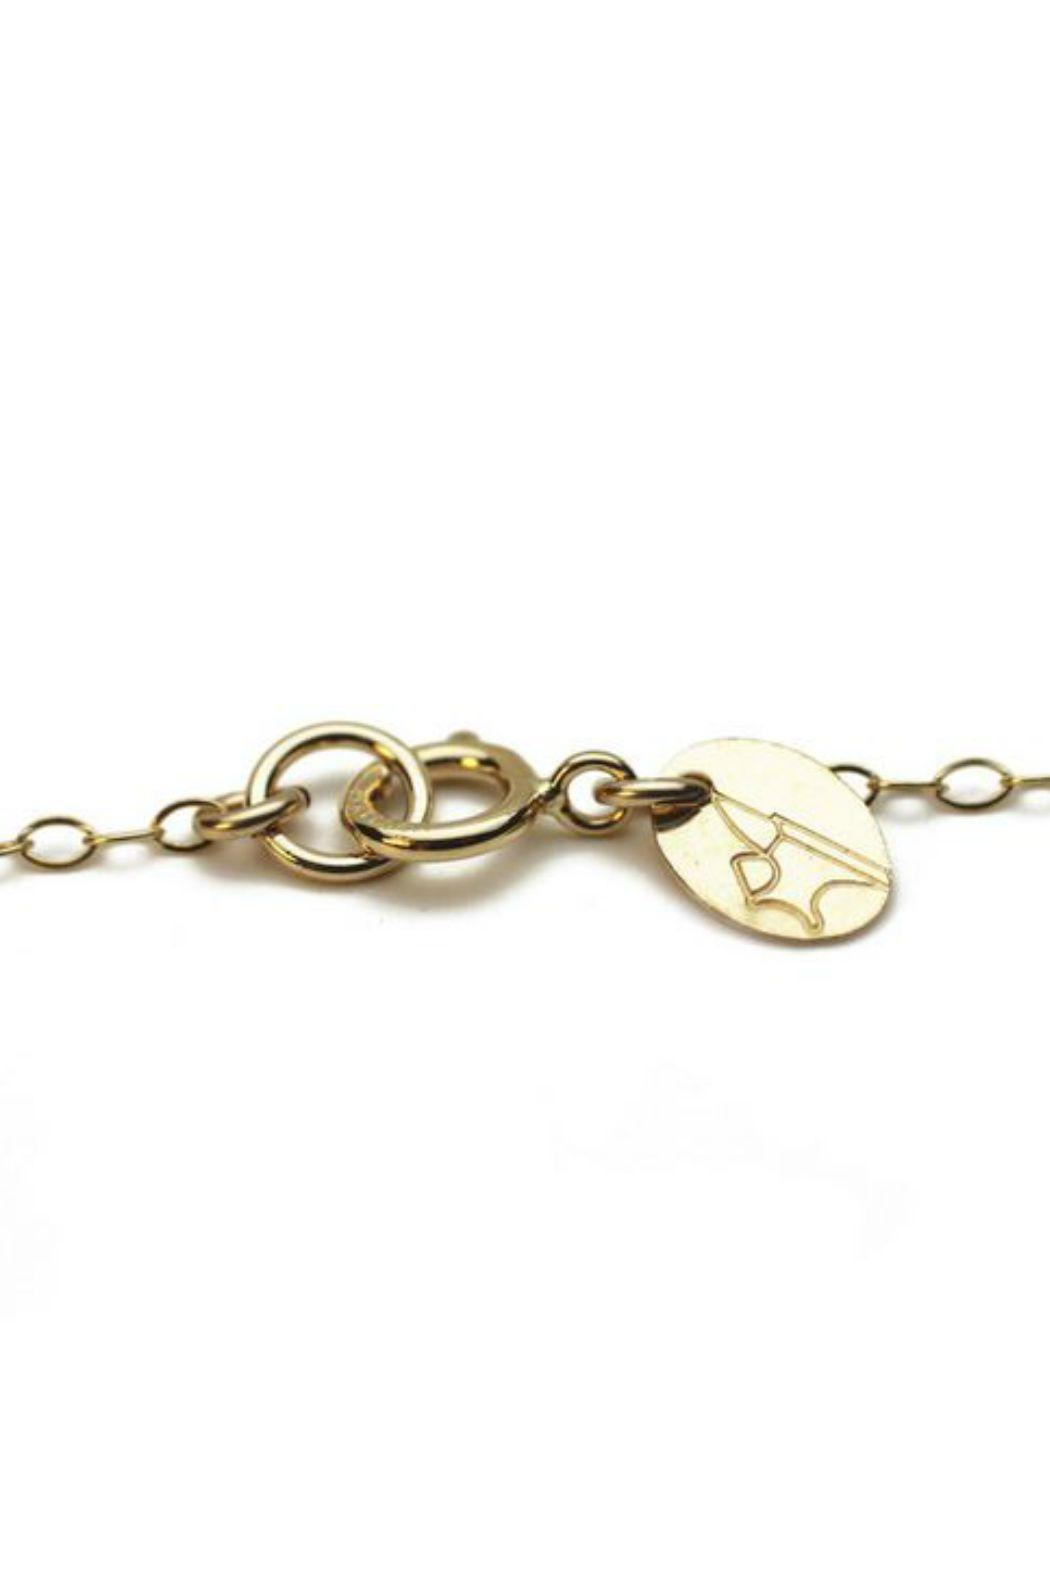 The Urban Smith Sagittarius Constellation Necklace from New